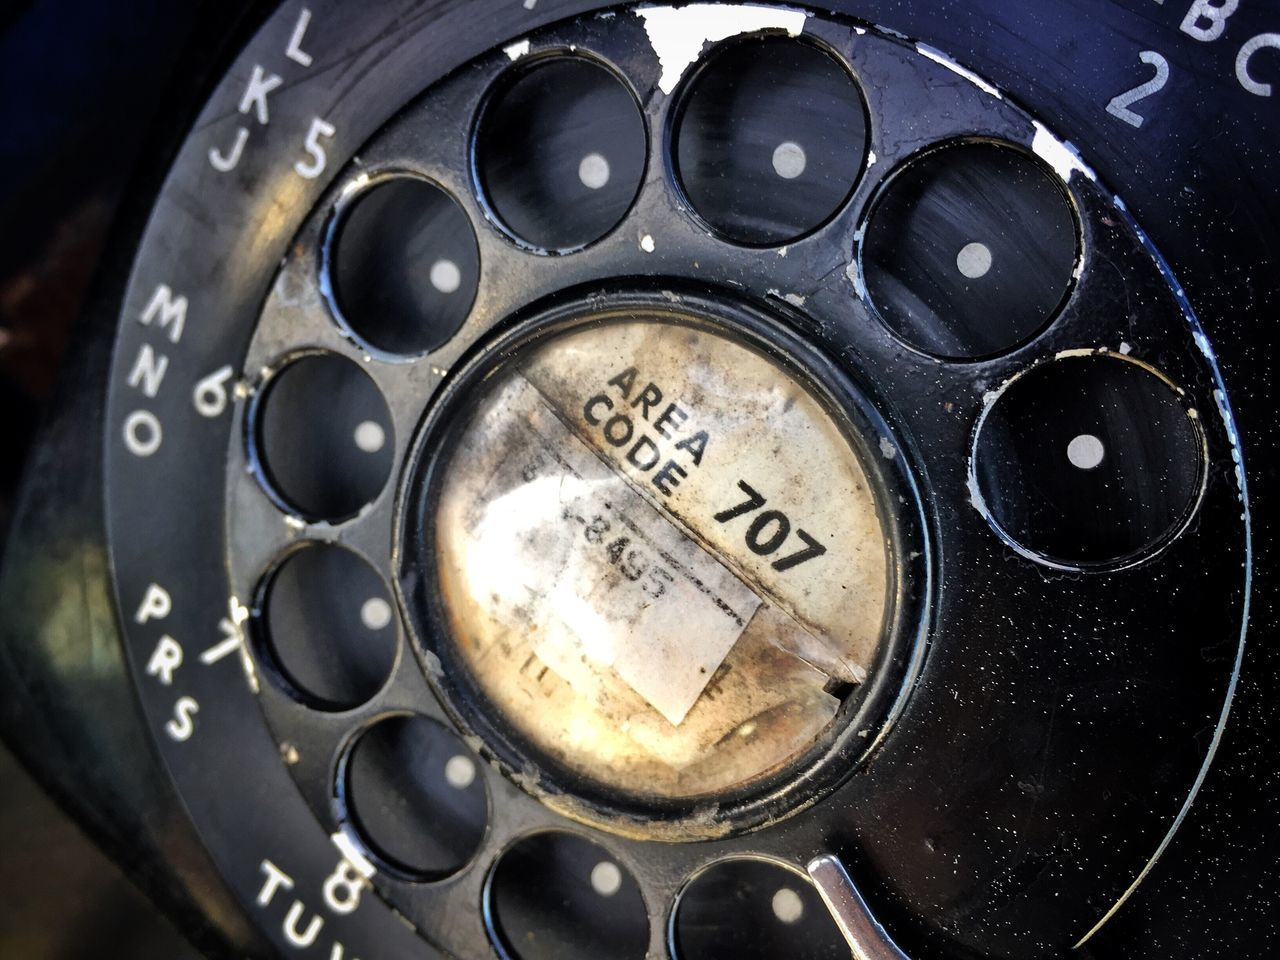 Old Phone Telephone Old Phone Rotary Phone Check This Out Hello World Old Technology Communication Call Me Phone Call Black Phone Dial Hand Dial Olden Days Simple Times Looking Down Rotary Rotary-dial Area Code Hello It's Me! Circle Numbers Numbers And Letters Is There Anybody Out There? ShotOniPhone6